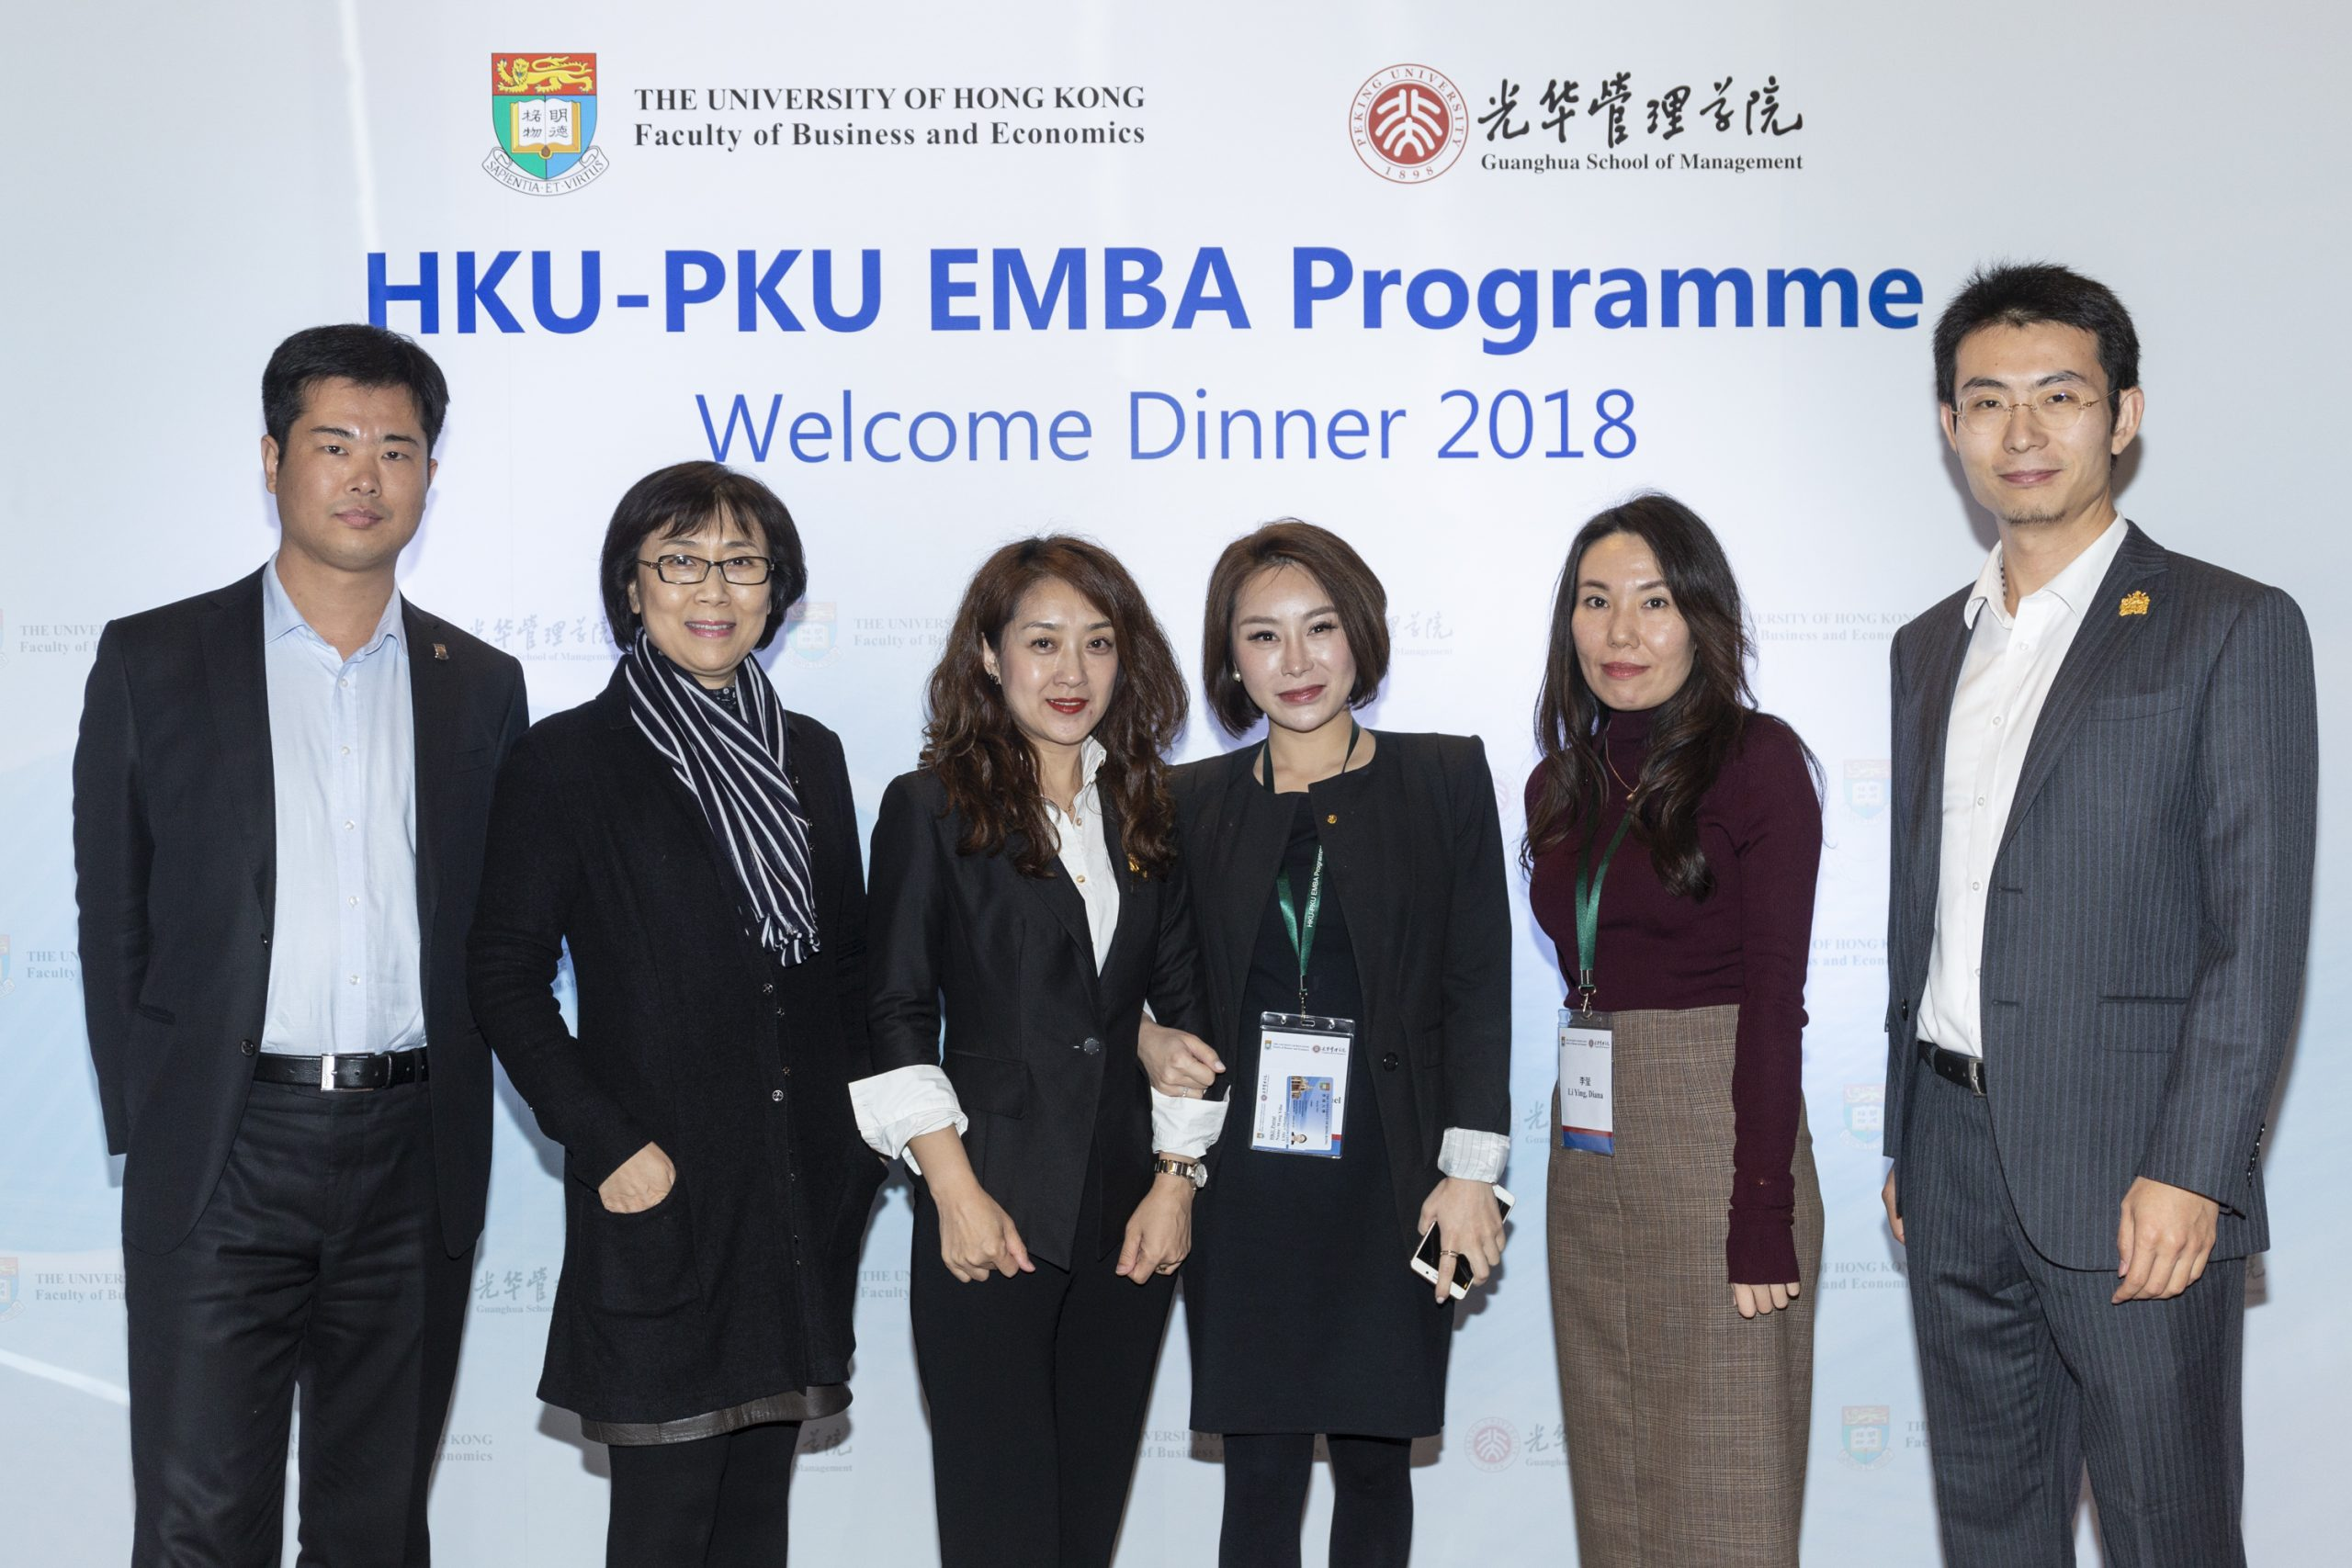 HKU EMBA programme launched in collaboration with Guanghua School of Management of Peking University